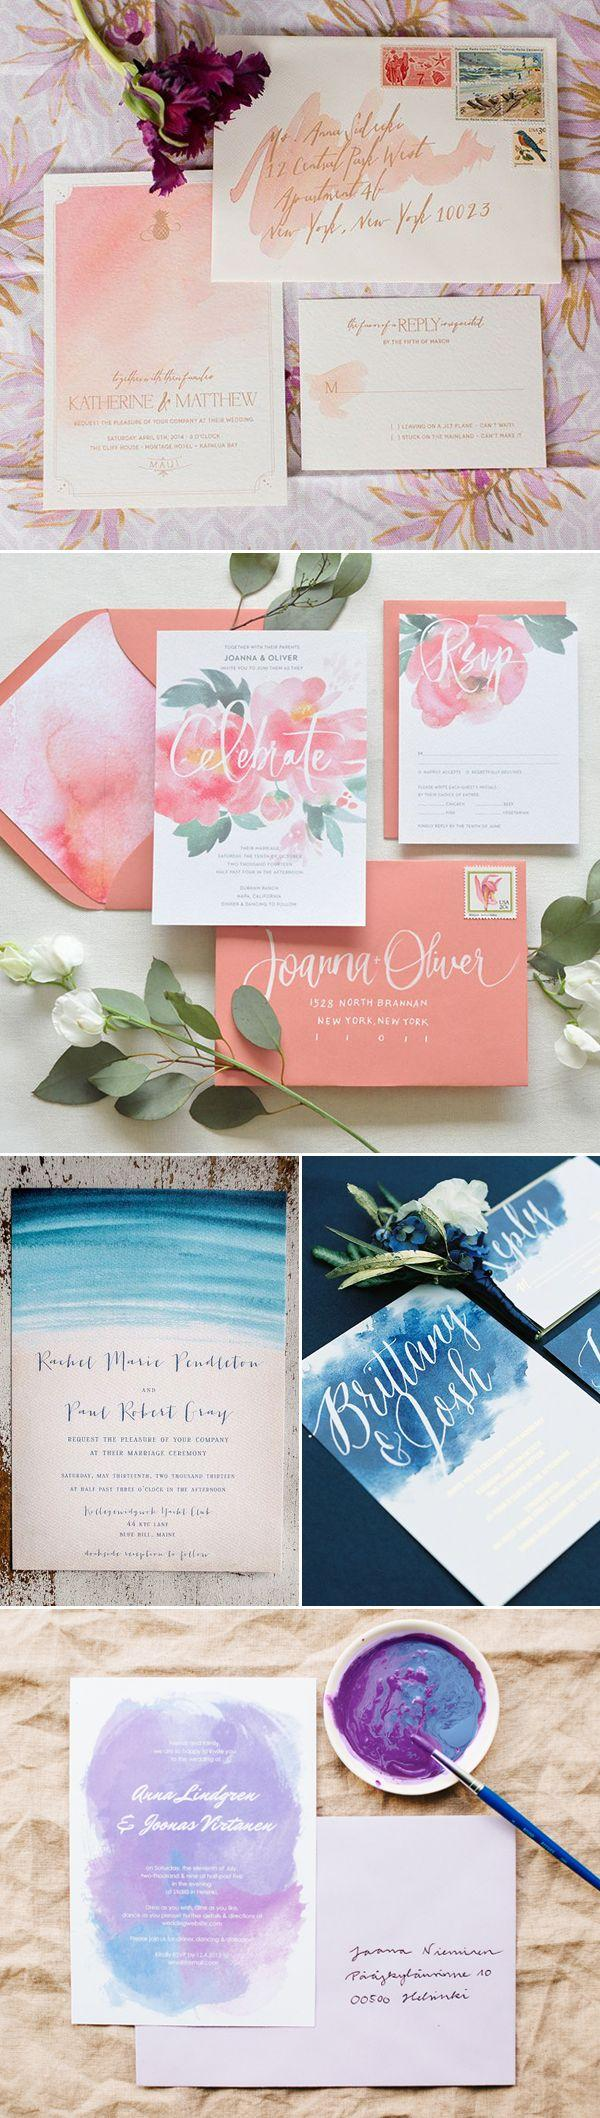 زفاف - Simple Is Beautiful! 30 Creative Invitation Ideas For Minimalist Couples